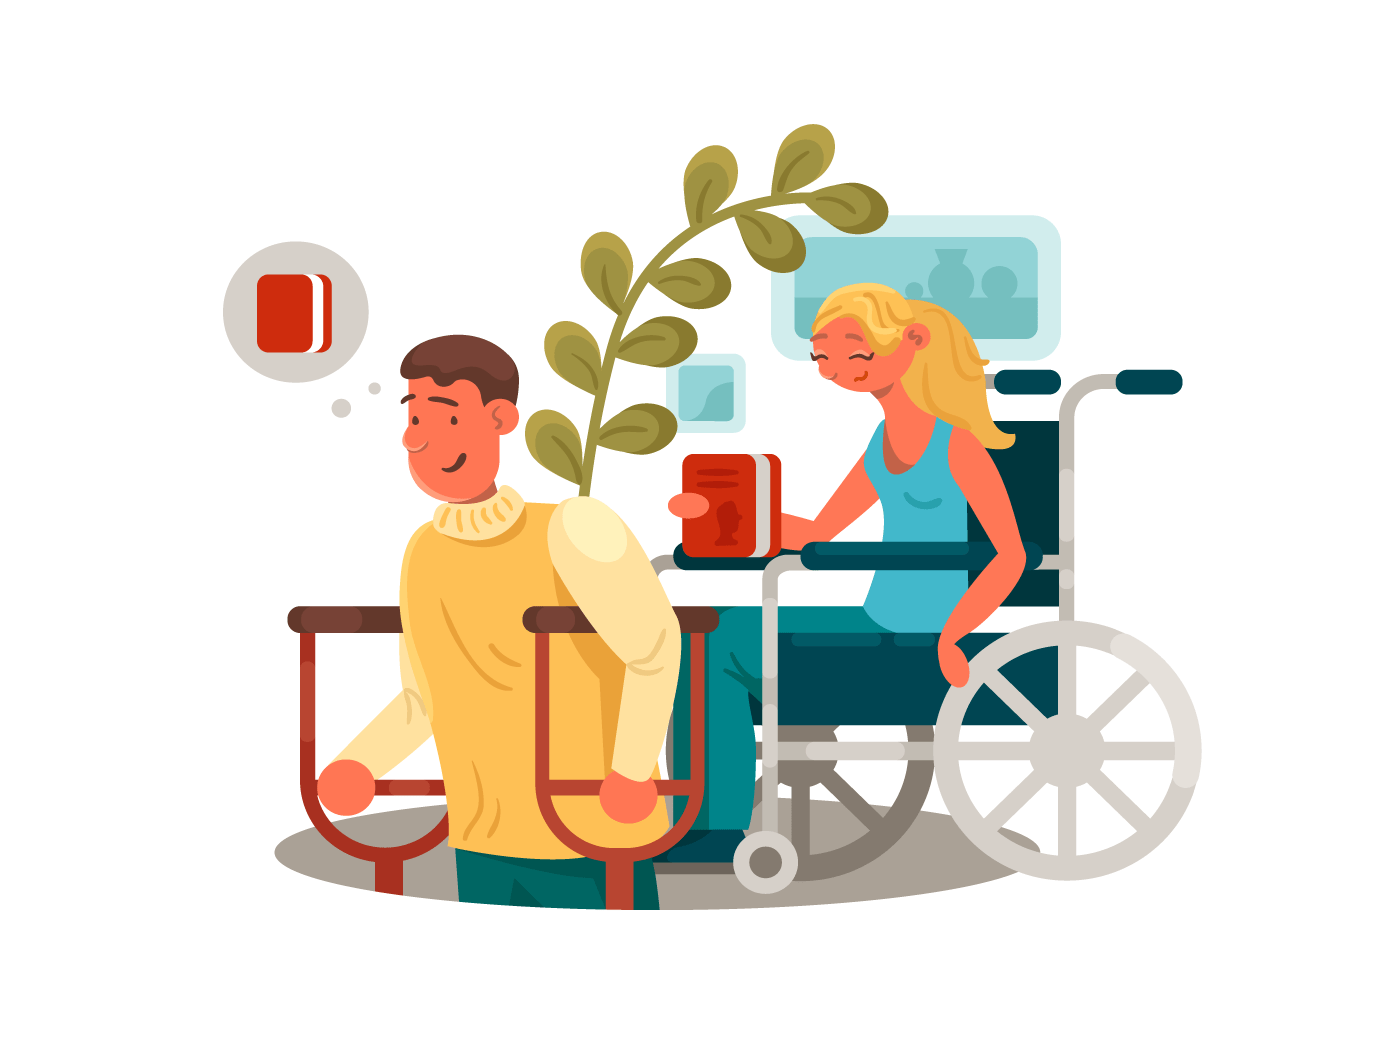 Persons with disabilities illustration